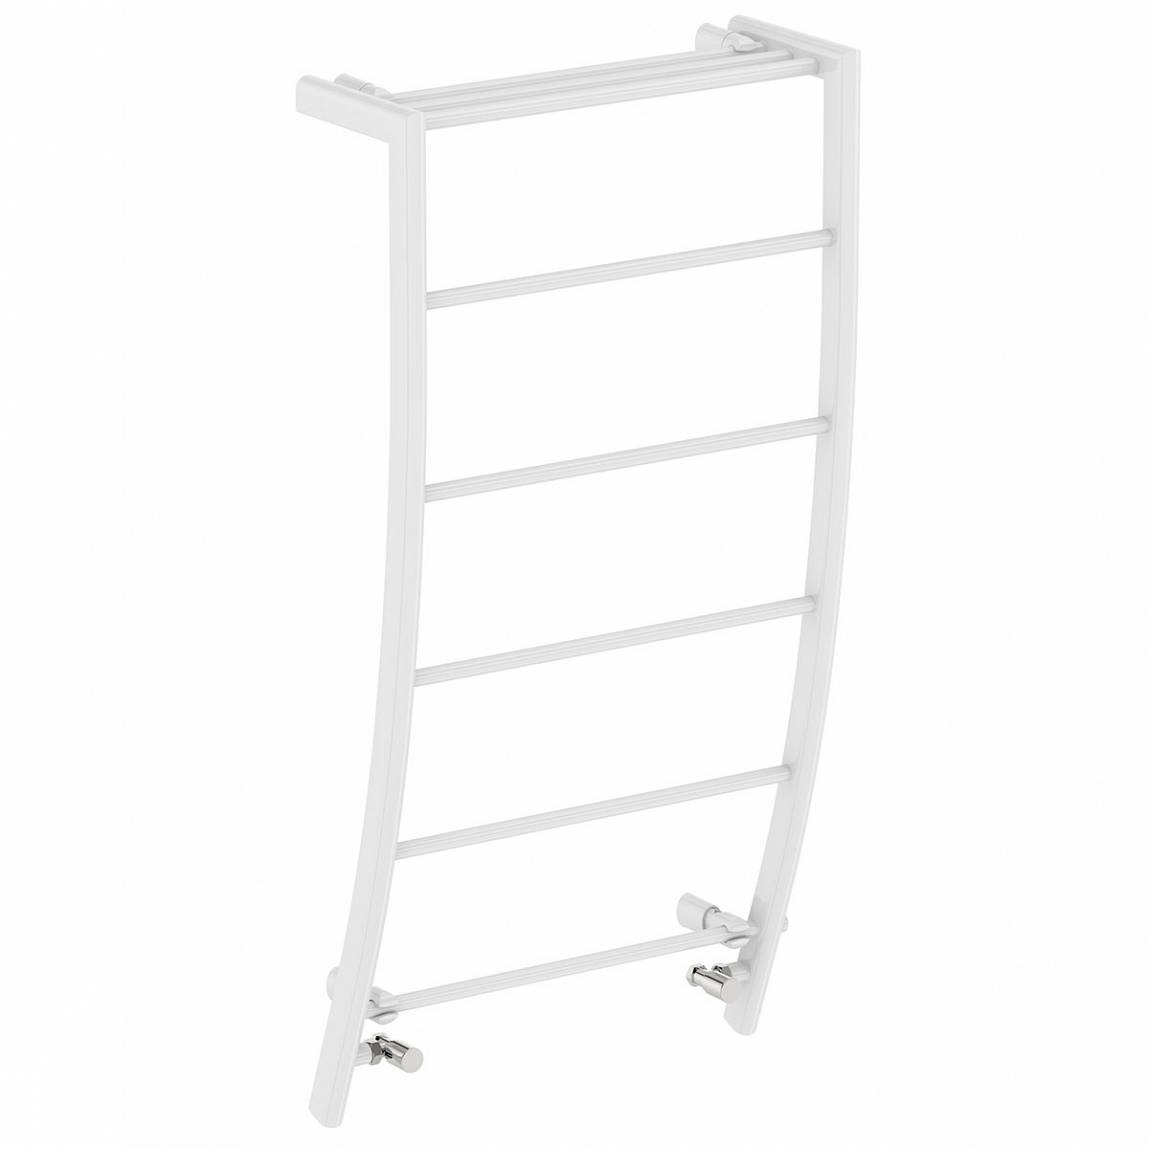 Image of White Curved Heated Towel Rail 1200 x 600